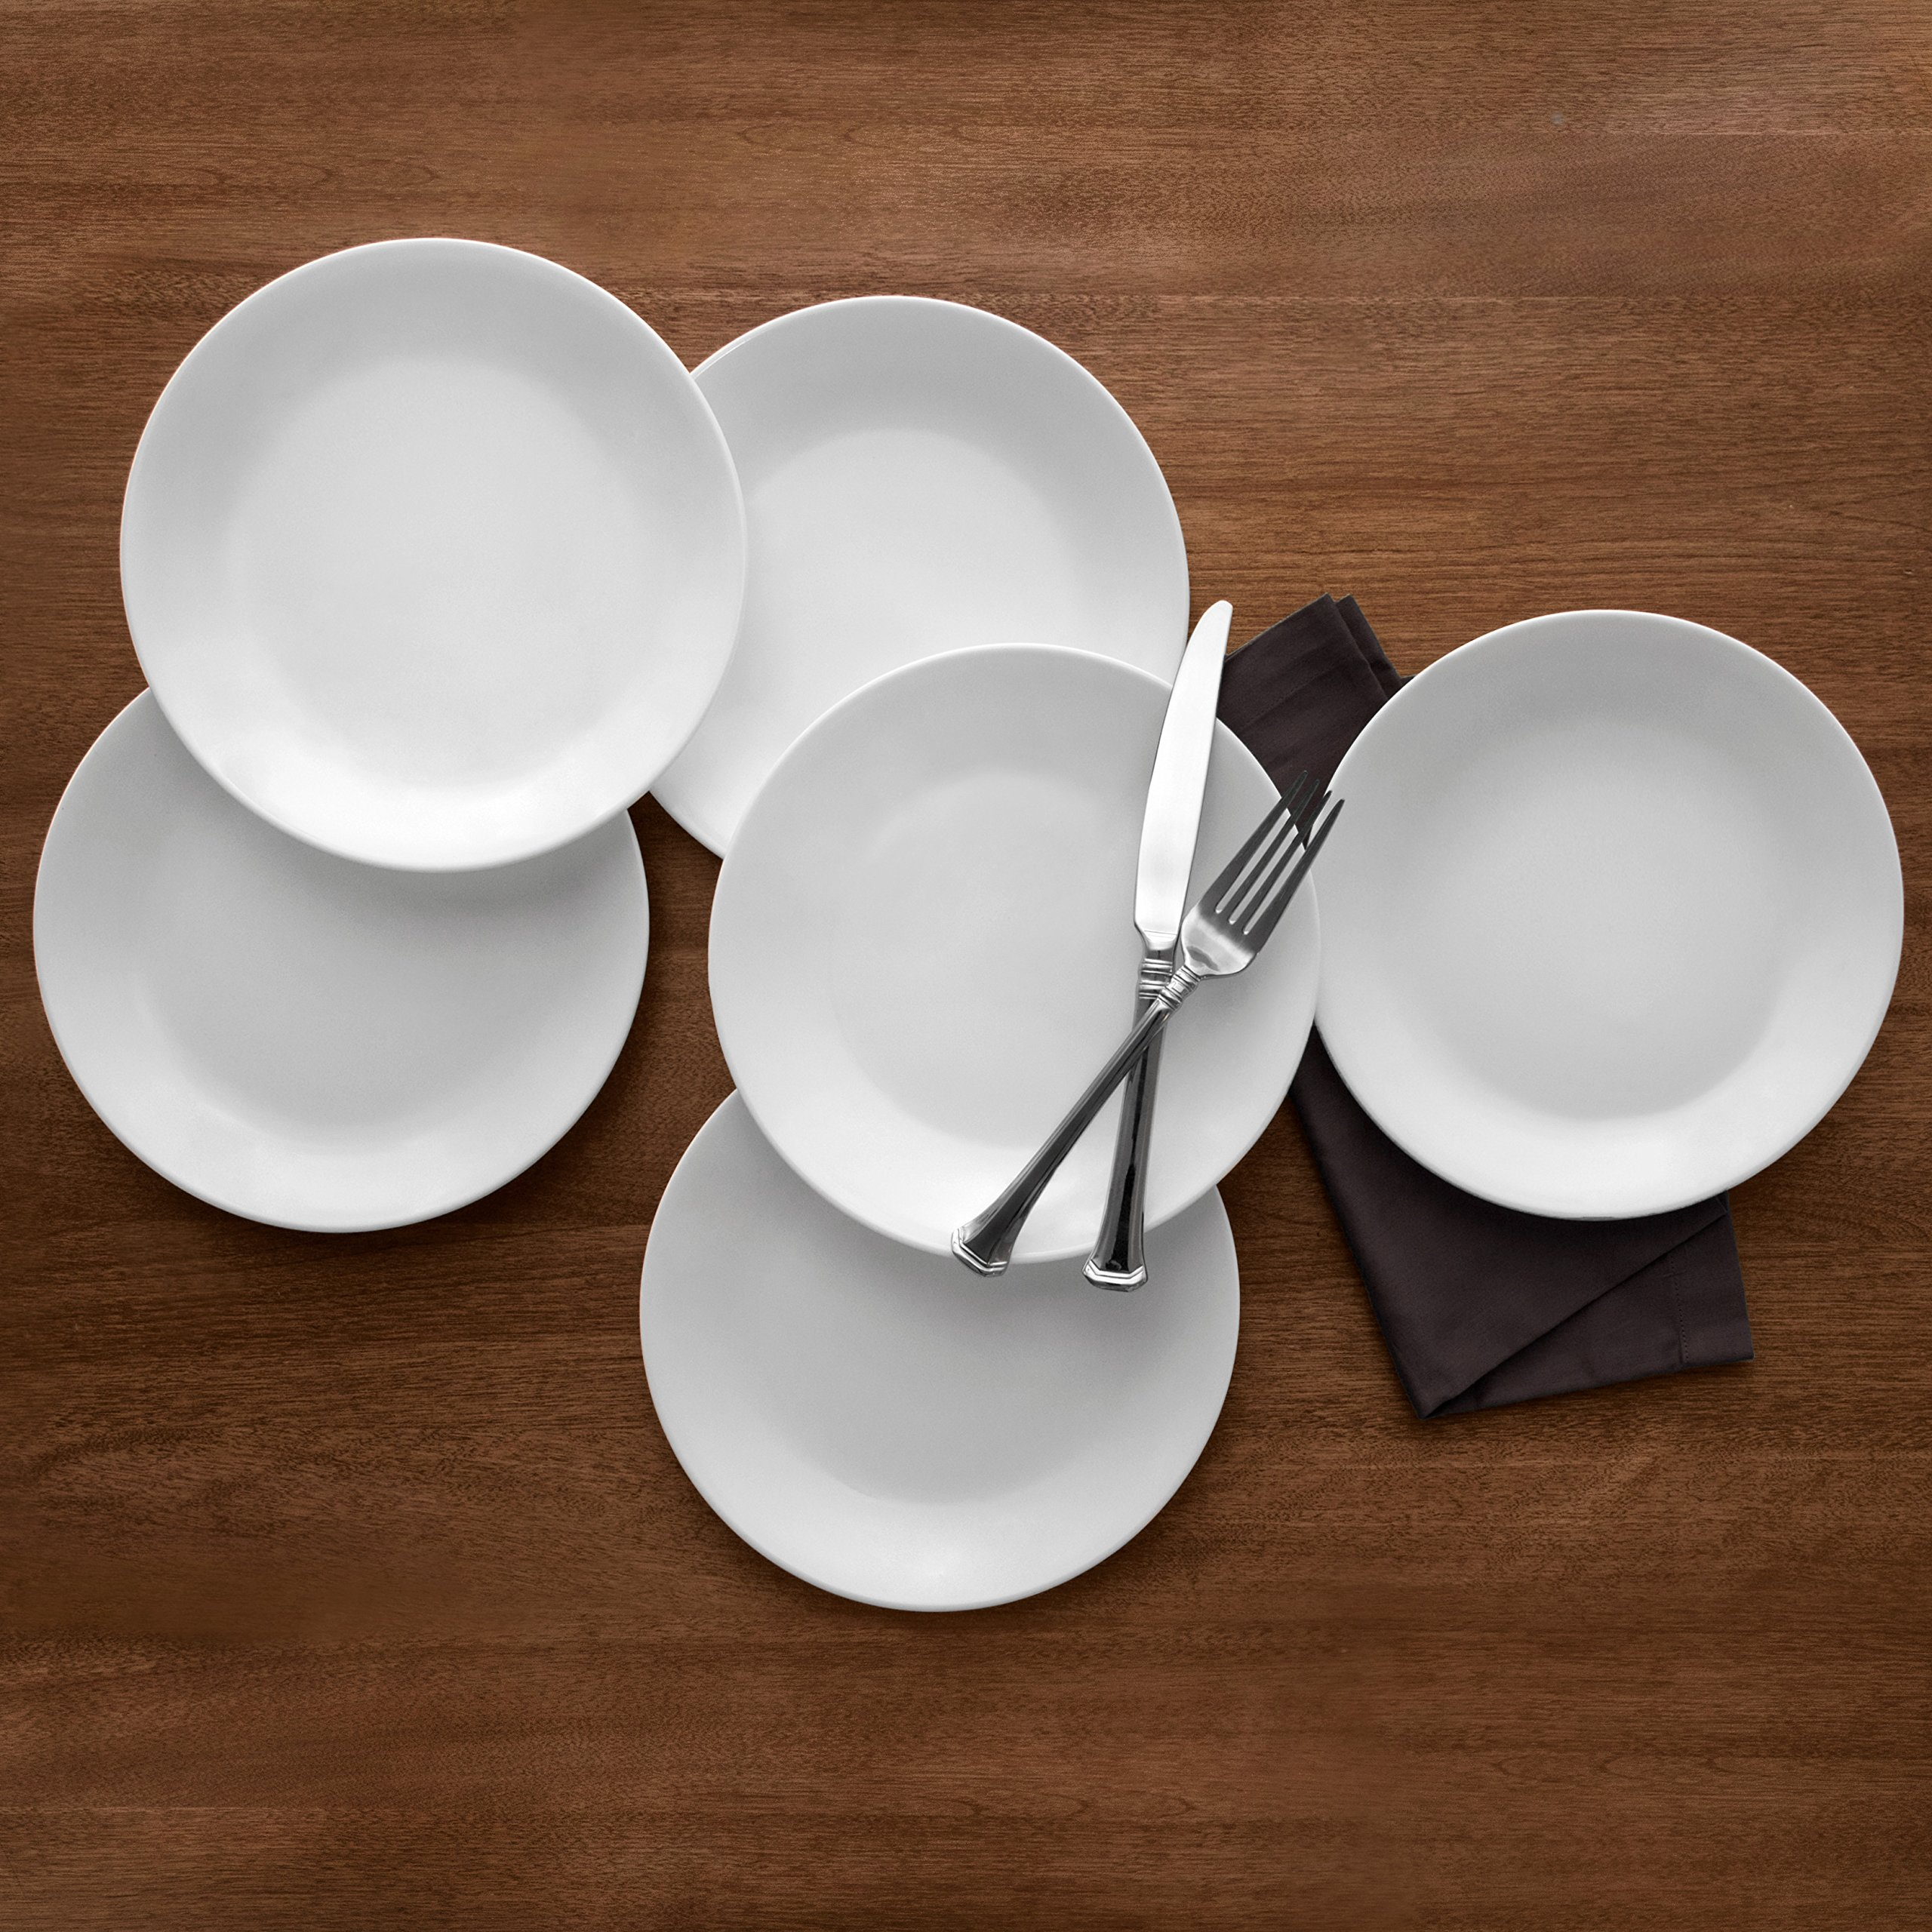 Corelle Winter Frost White Lunch Plates Set (8-1/2-Inch, 6-Piece, White) by Corelle (Image #2)